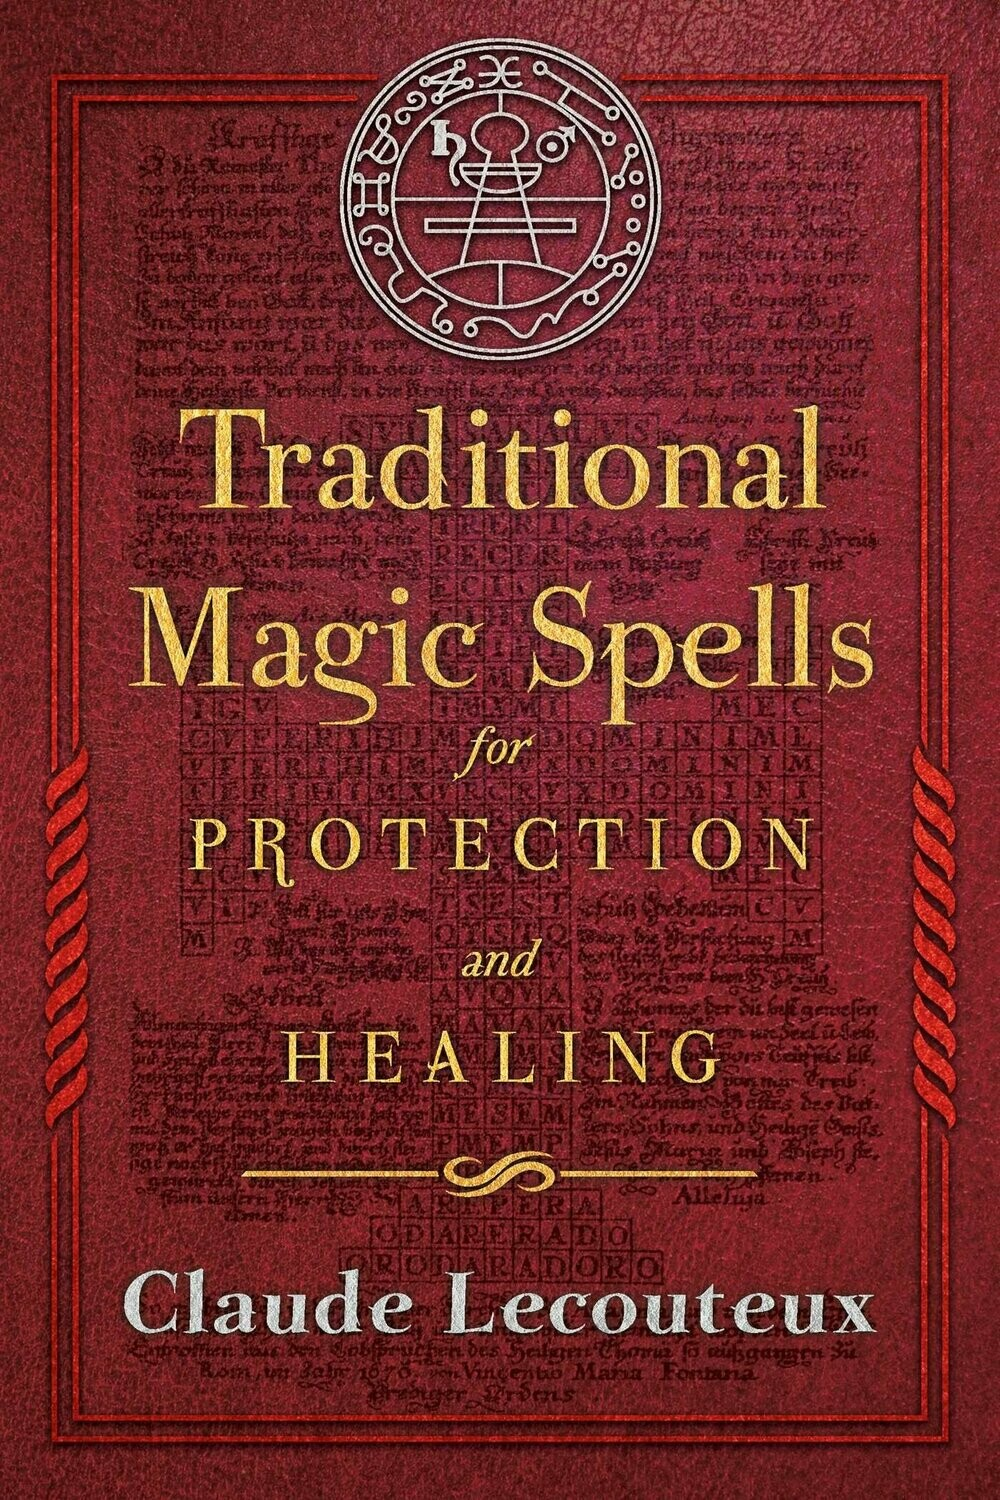 Traditional Magic Spells for Protection and Healing by Claude Lecouteux